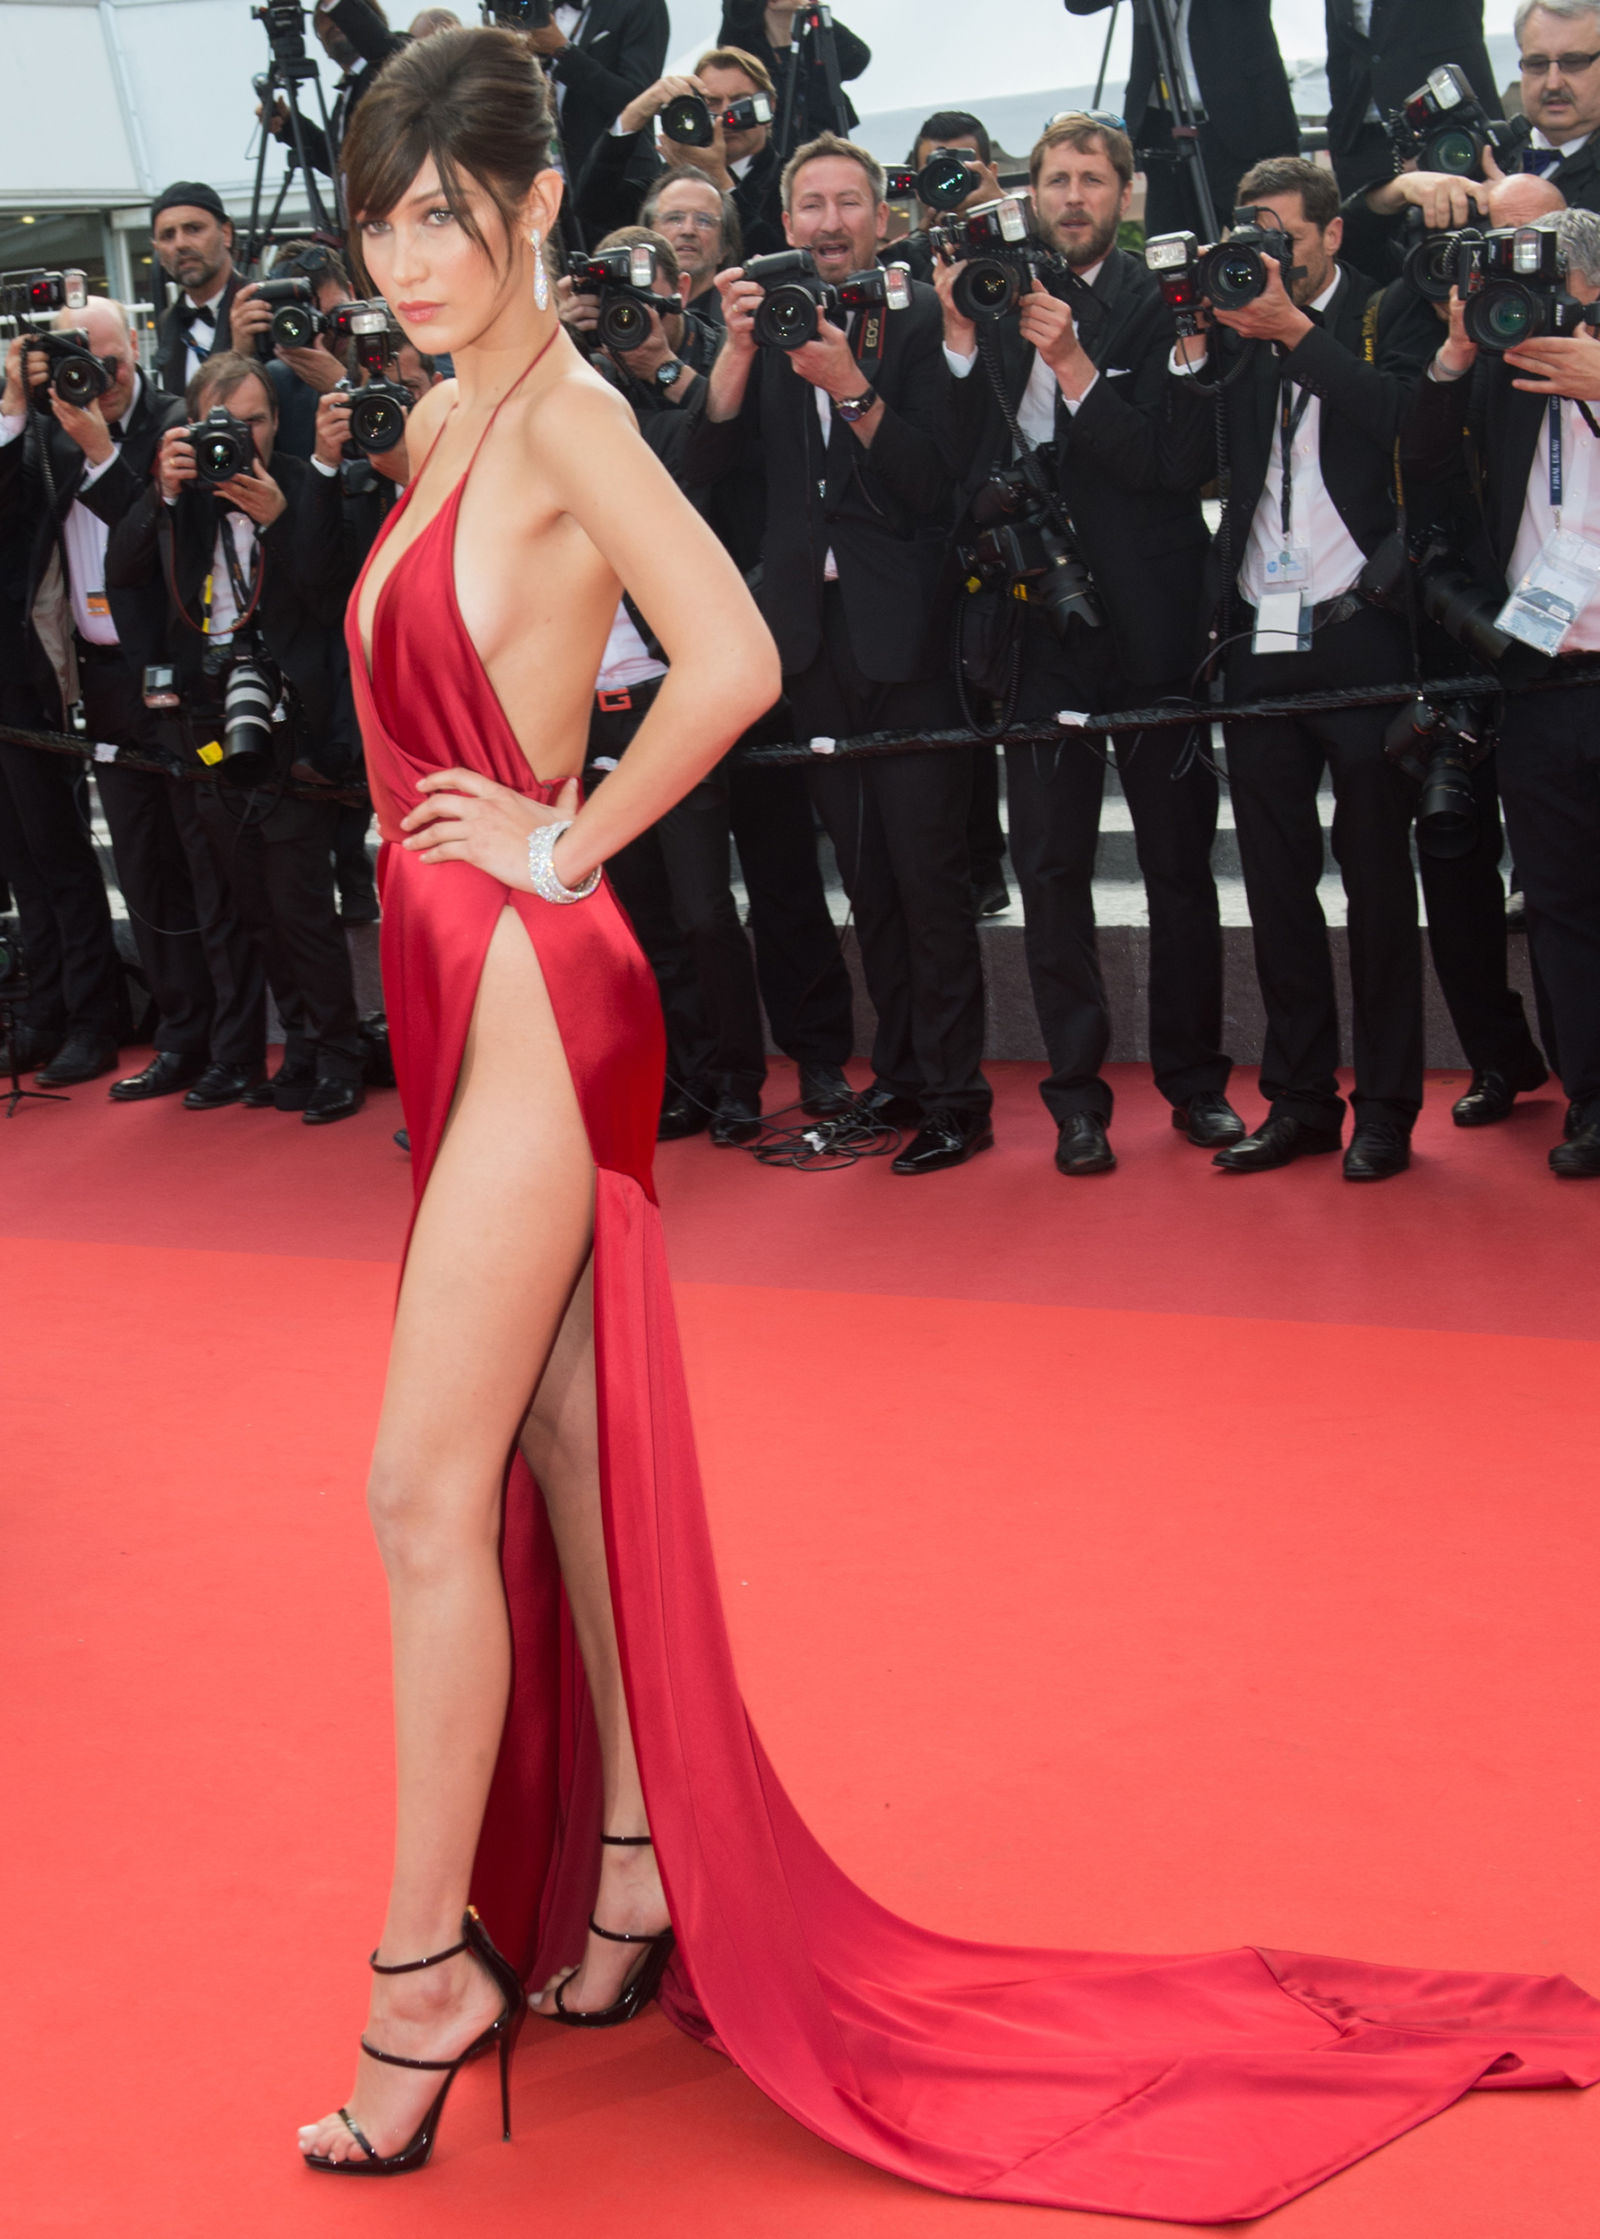 bella-hadid-red-naked-dress-cannes-alexandre-vauthier